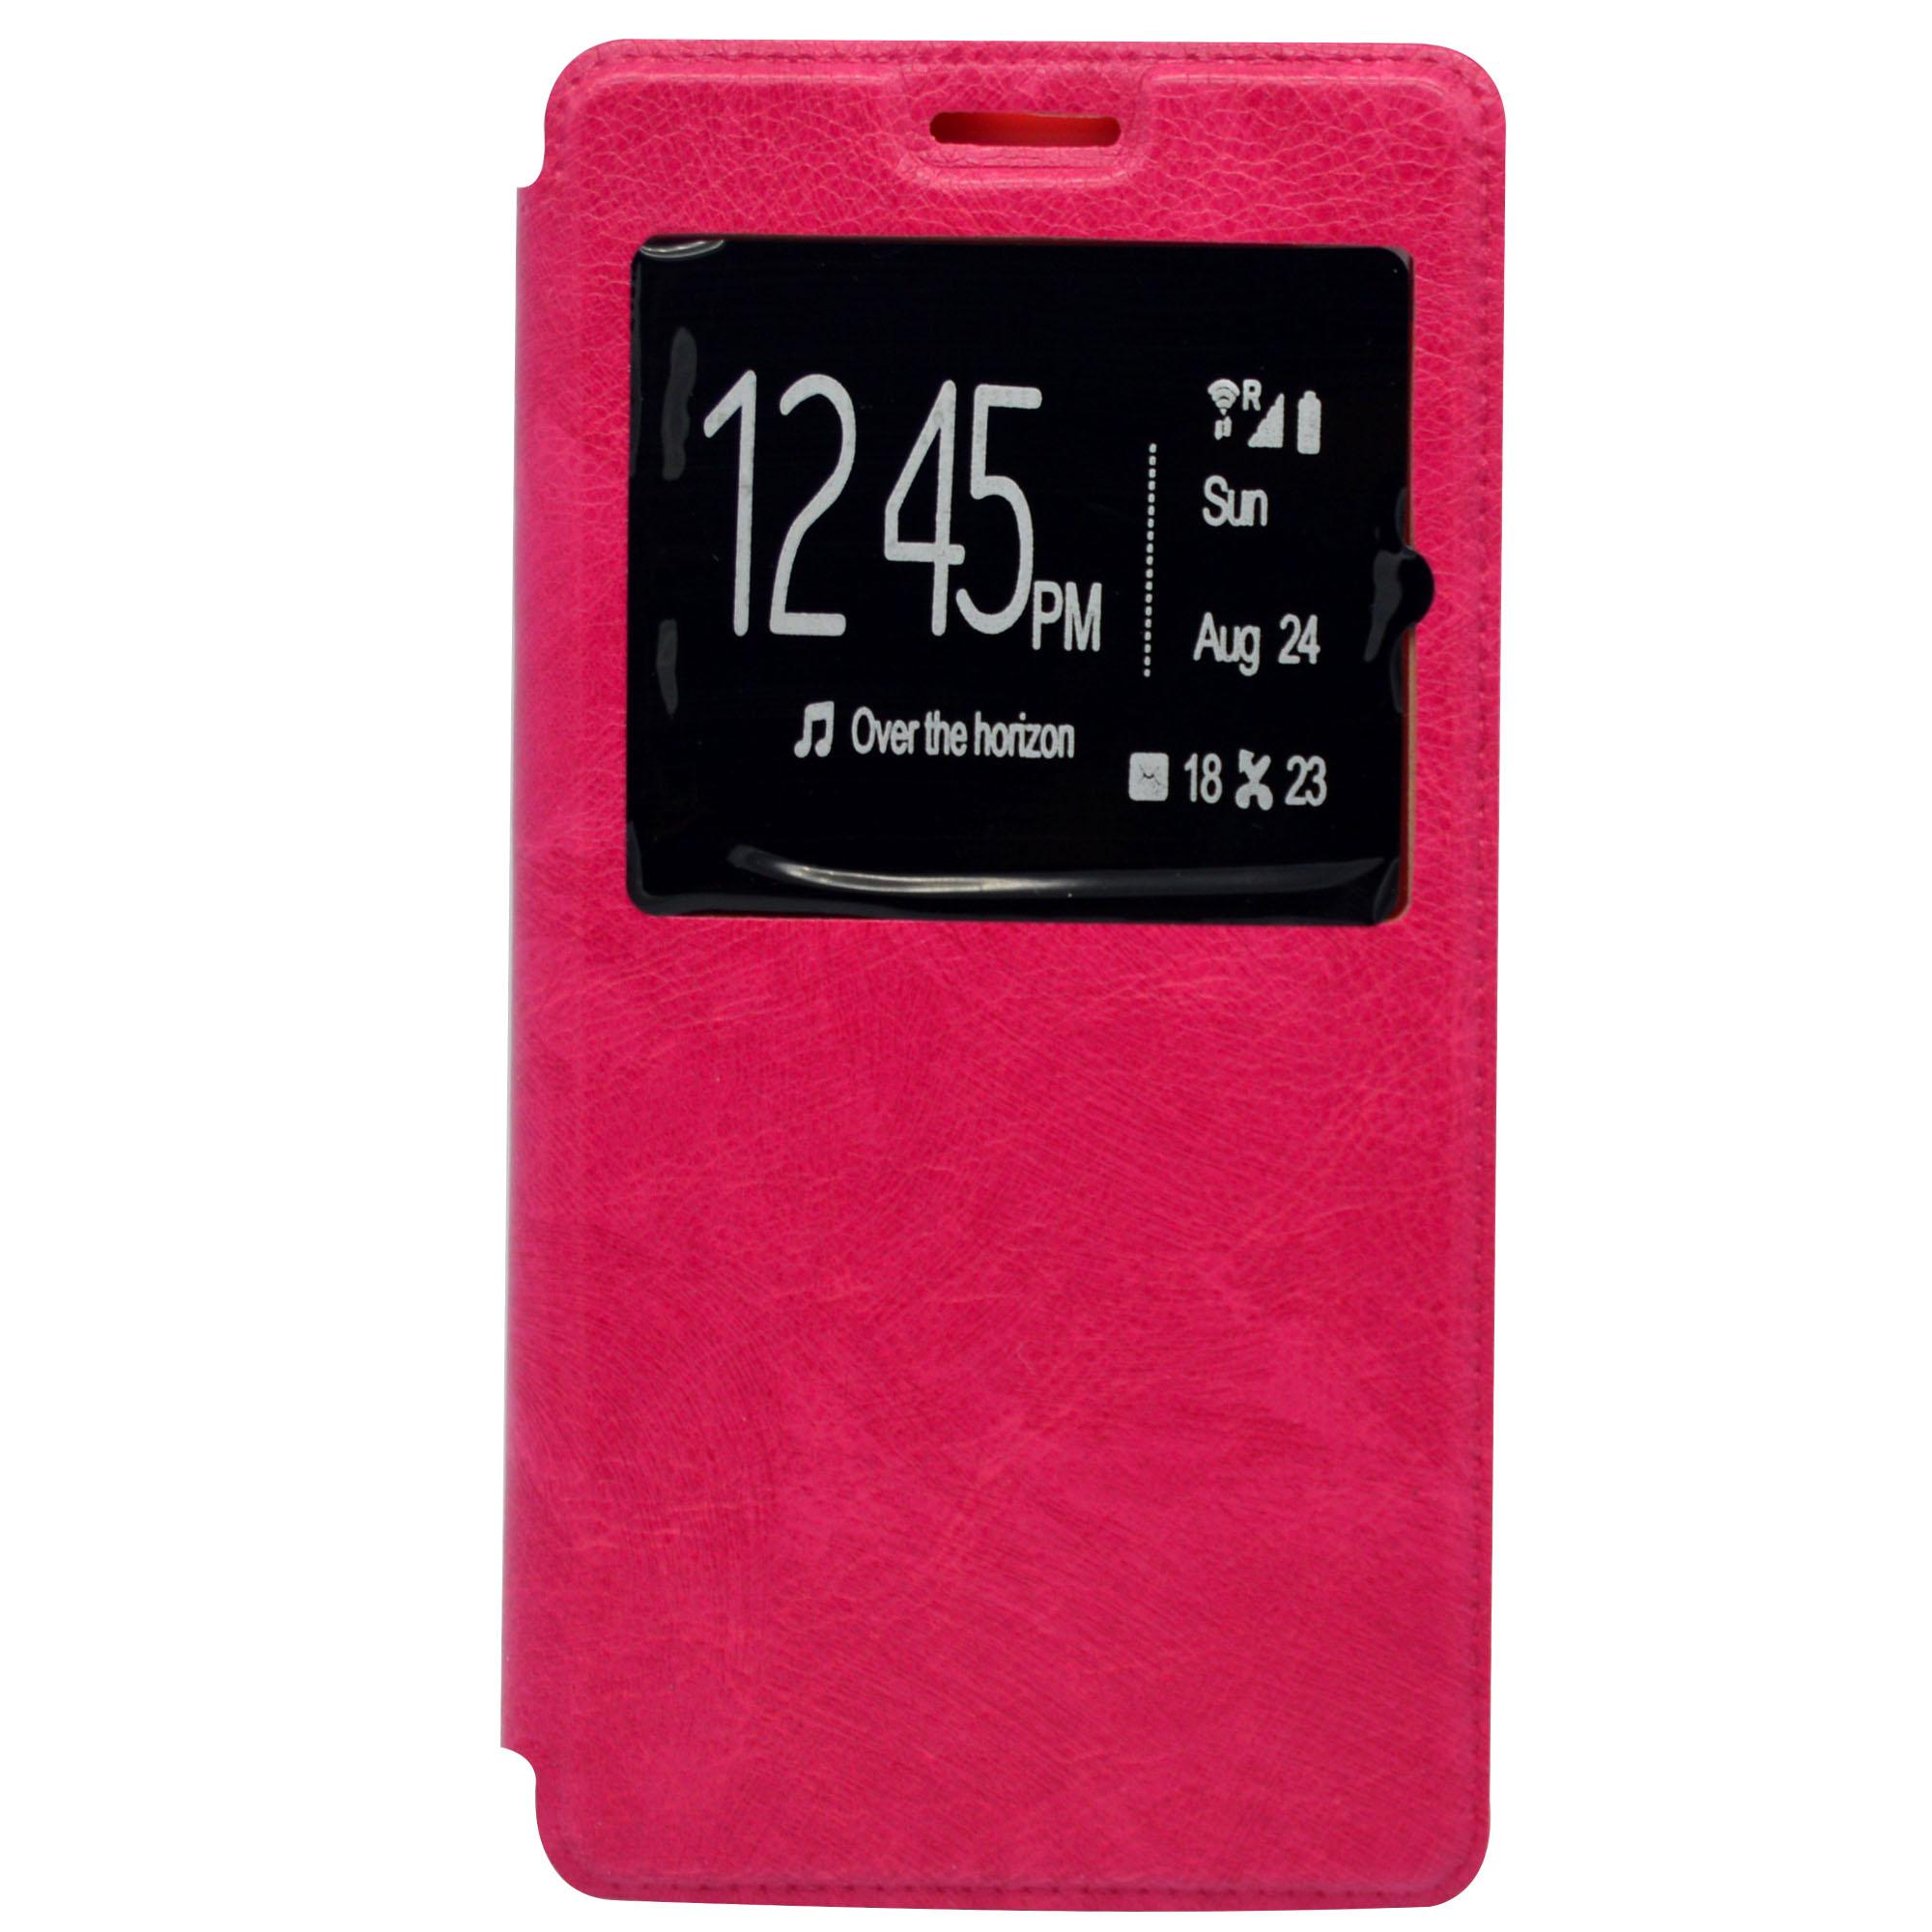 Lenovo A7010 Battery Back Cover Replacement. ₱1,199.00. Philippines. Smart View Bi-Fold PU Leather Case for Lenovo A7000 Pink